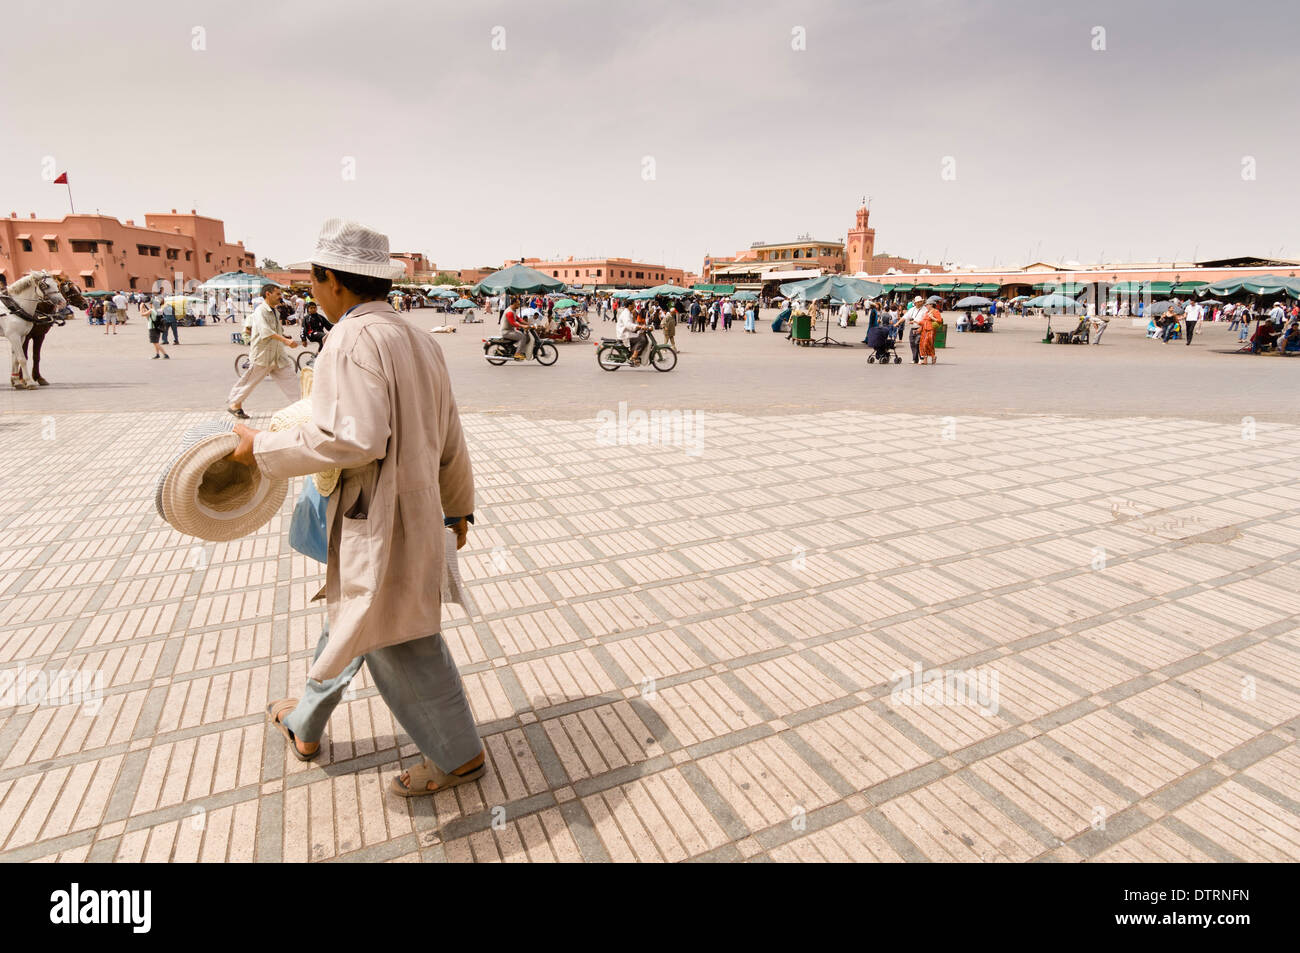 Place Djemaa el Fna in the Medina of Marrakesh, Morocco. - Stock Image